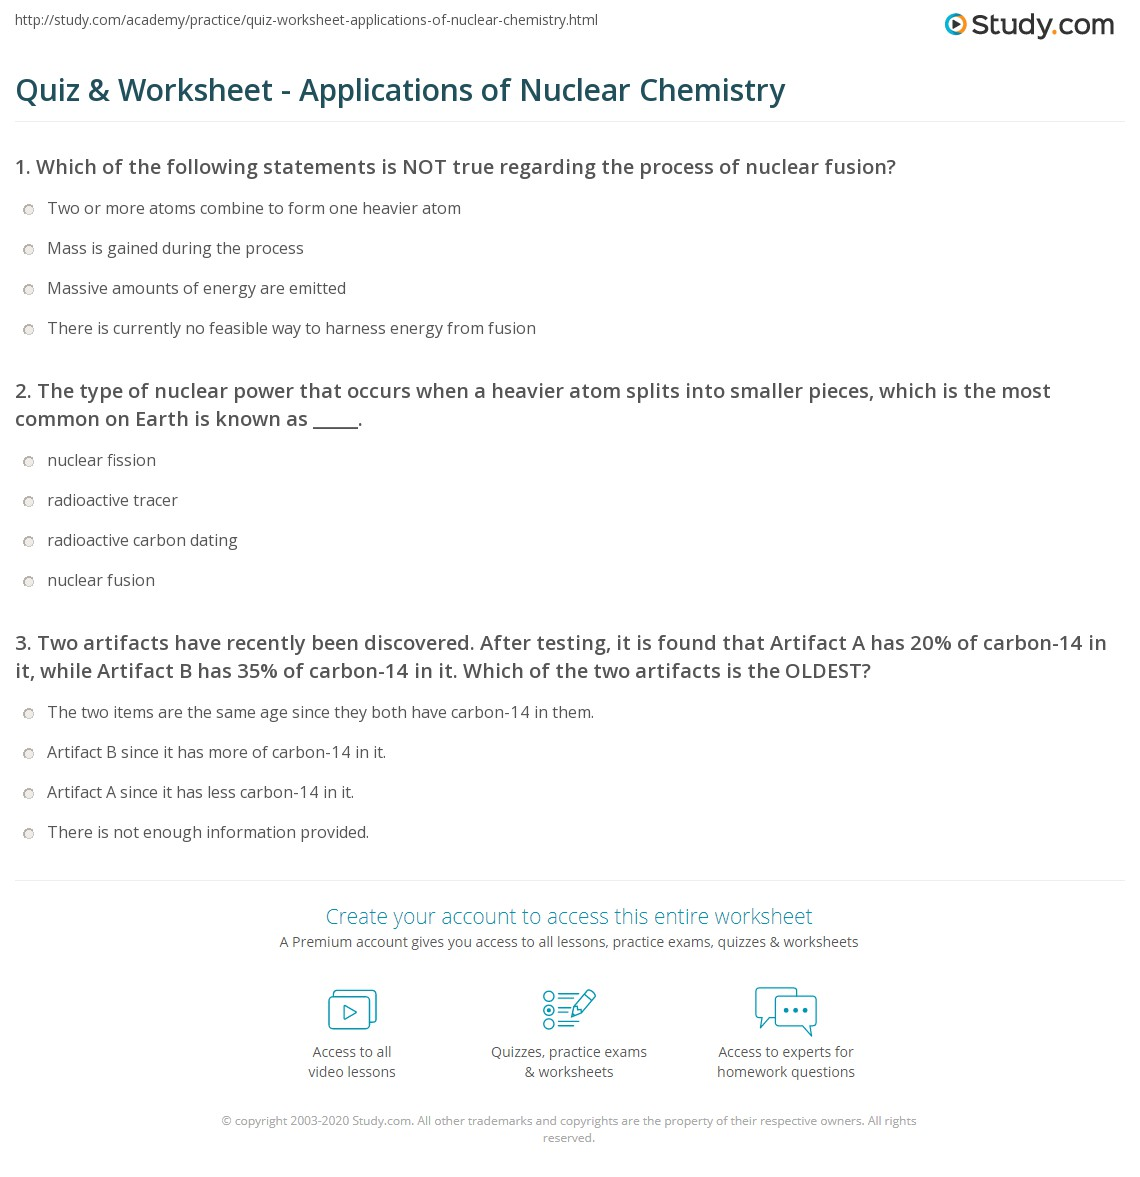 quiz worksheet applications of nuclear chemistry. Black Bedroom Furniture Sets. Home Design Ideas